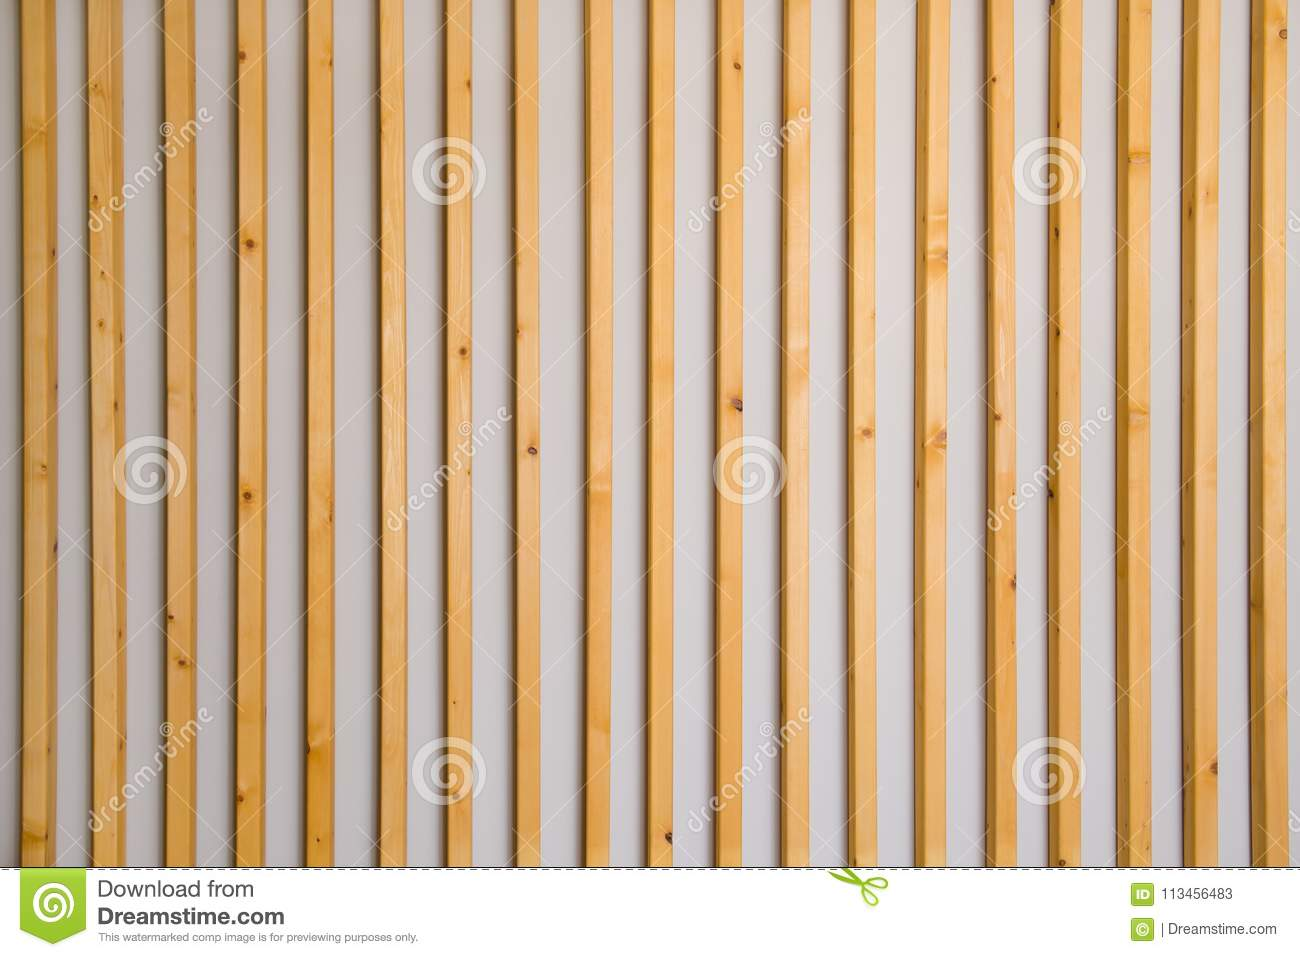 Vertical Wood Slat Wall Wooden Vertical Slats Batten On A Light Gray Wall Background